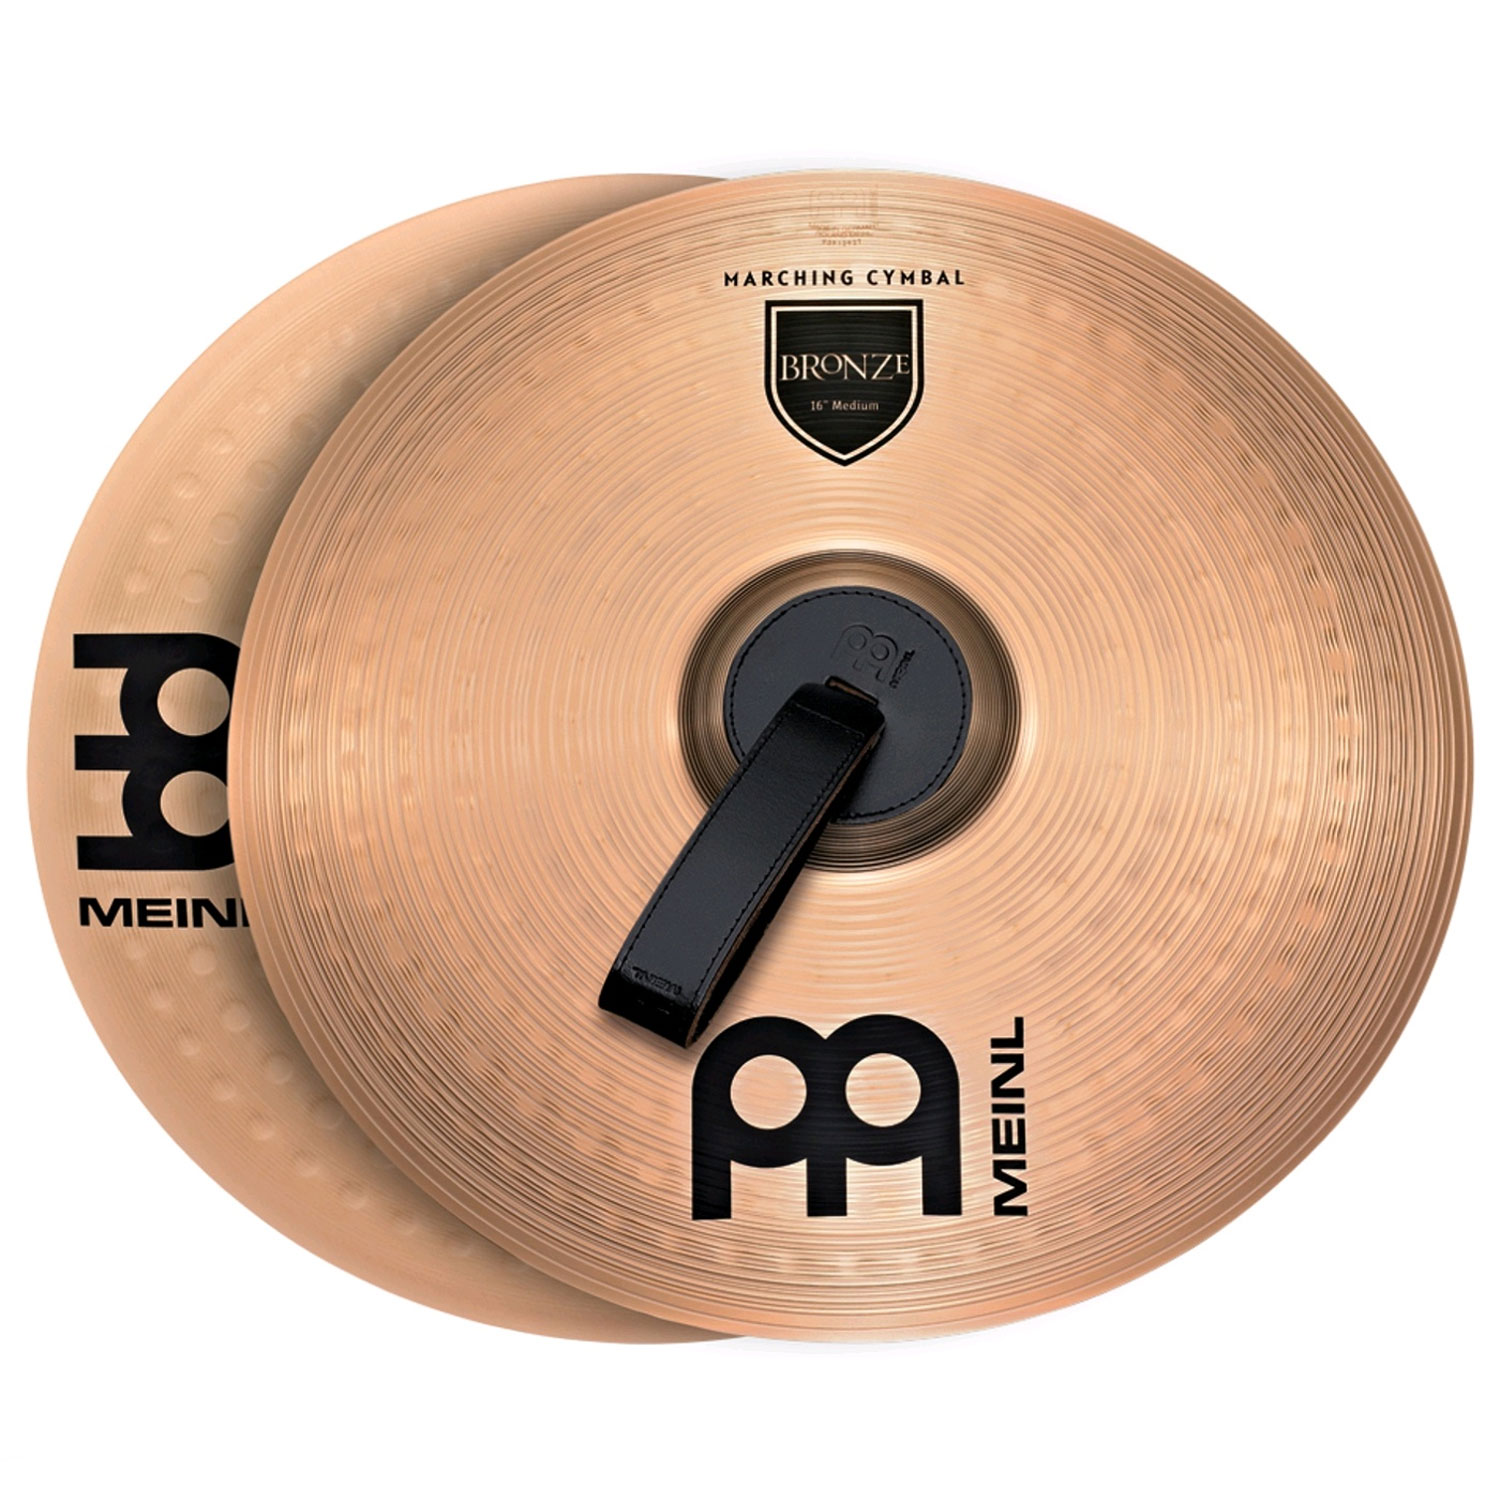 "Meinl 16"" Medium B8 Student Marching Cymbals Pair"